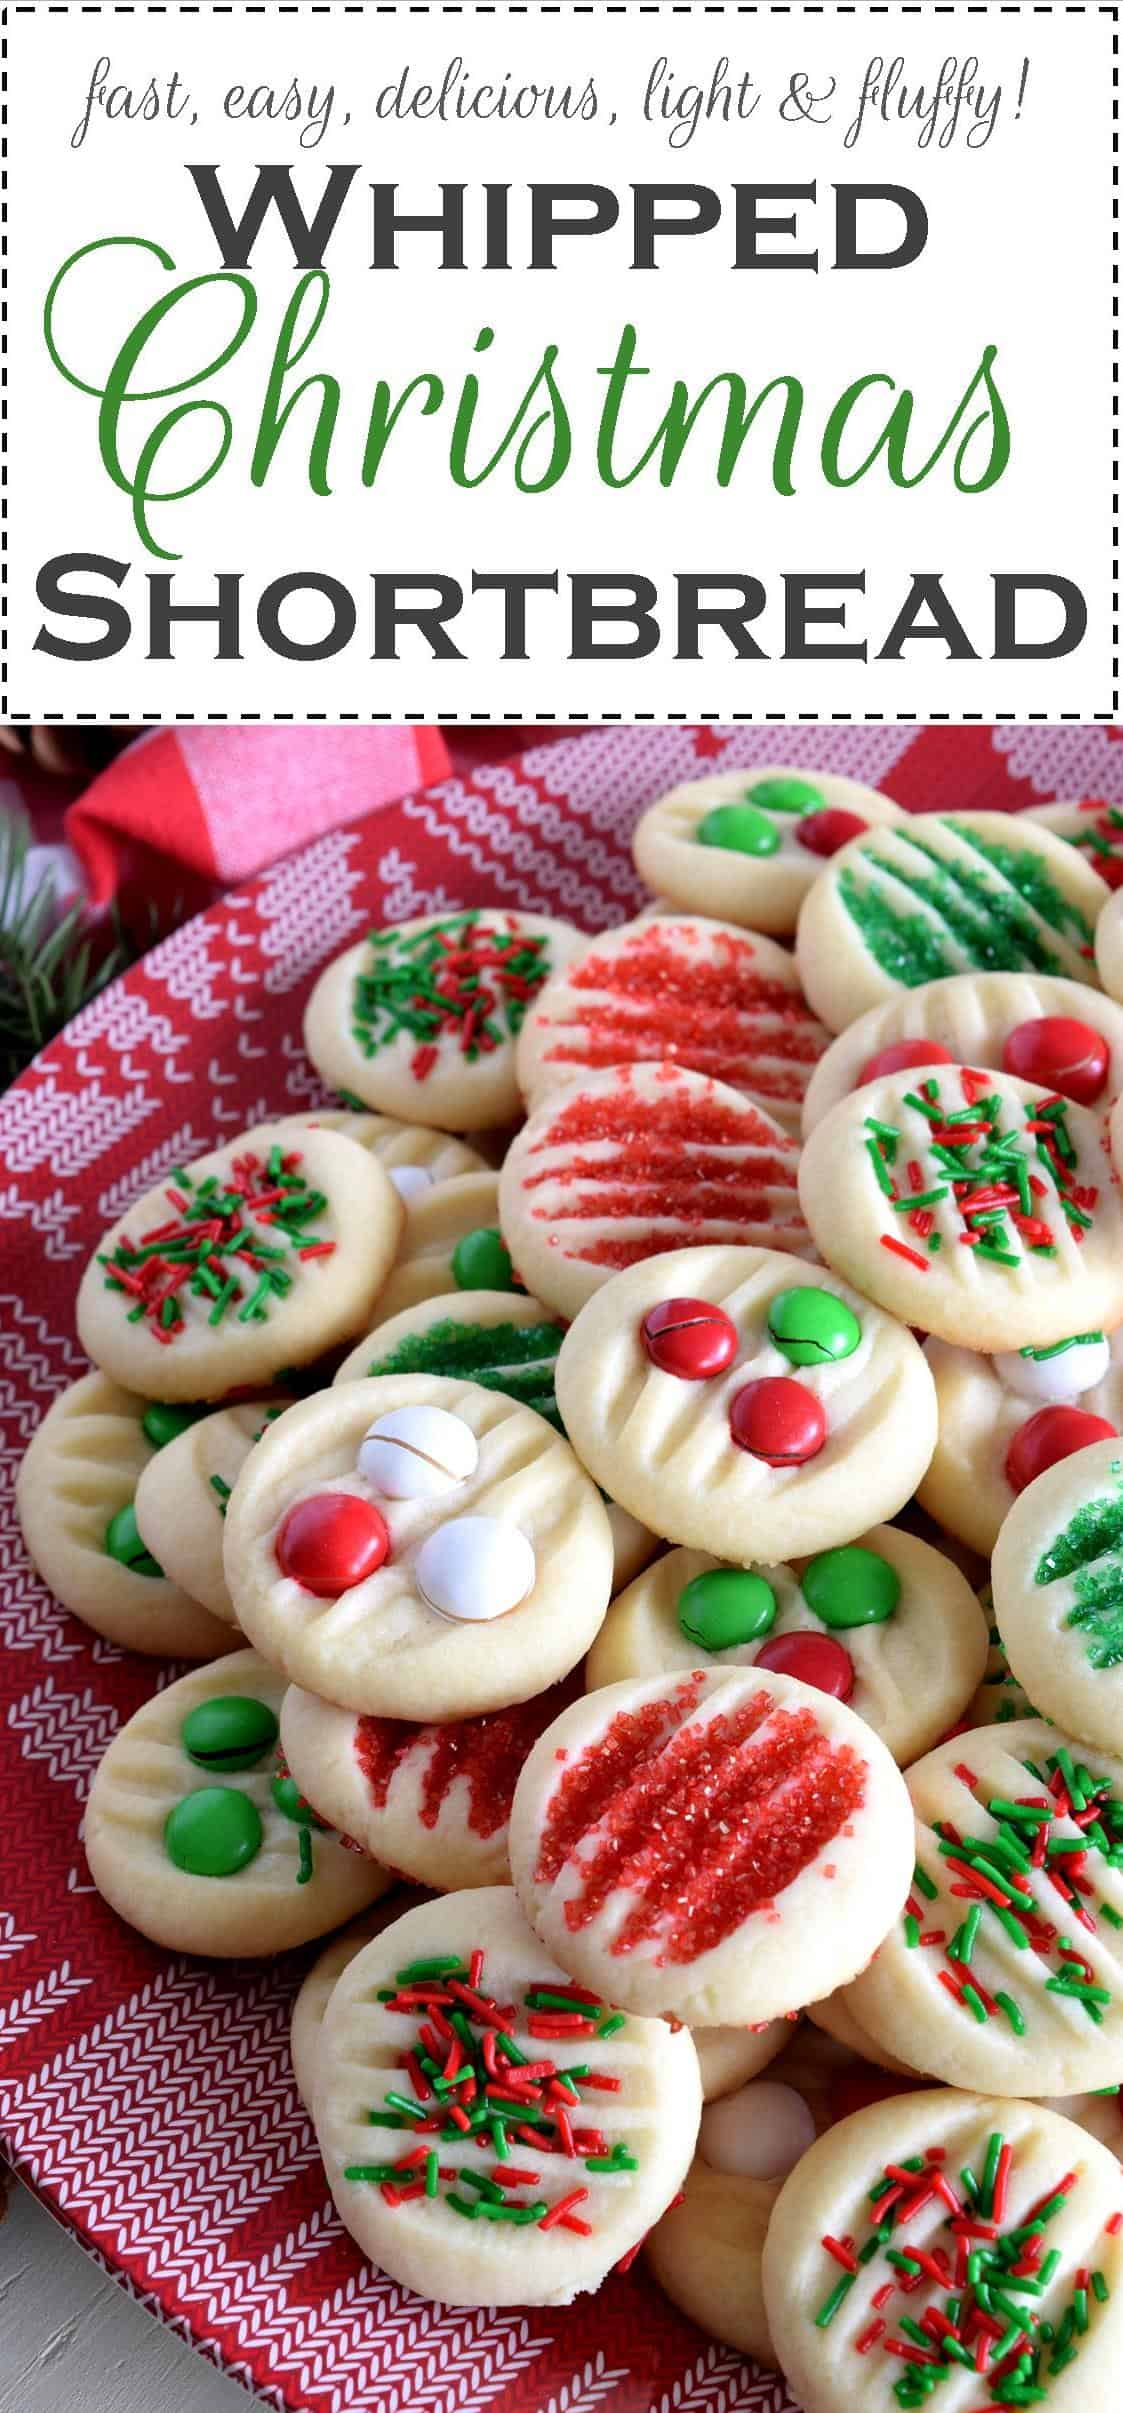 Whipped Christmas Shortbread